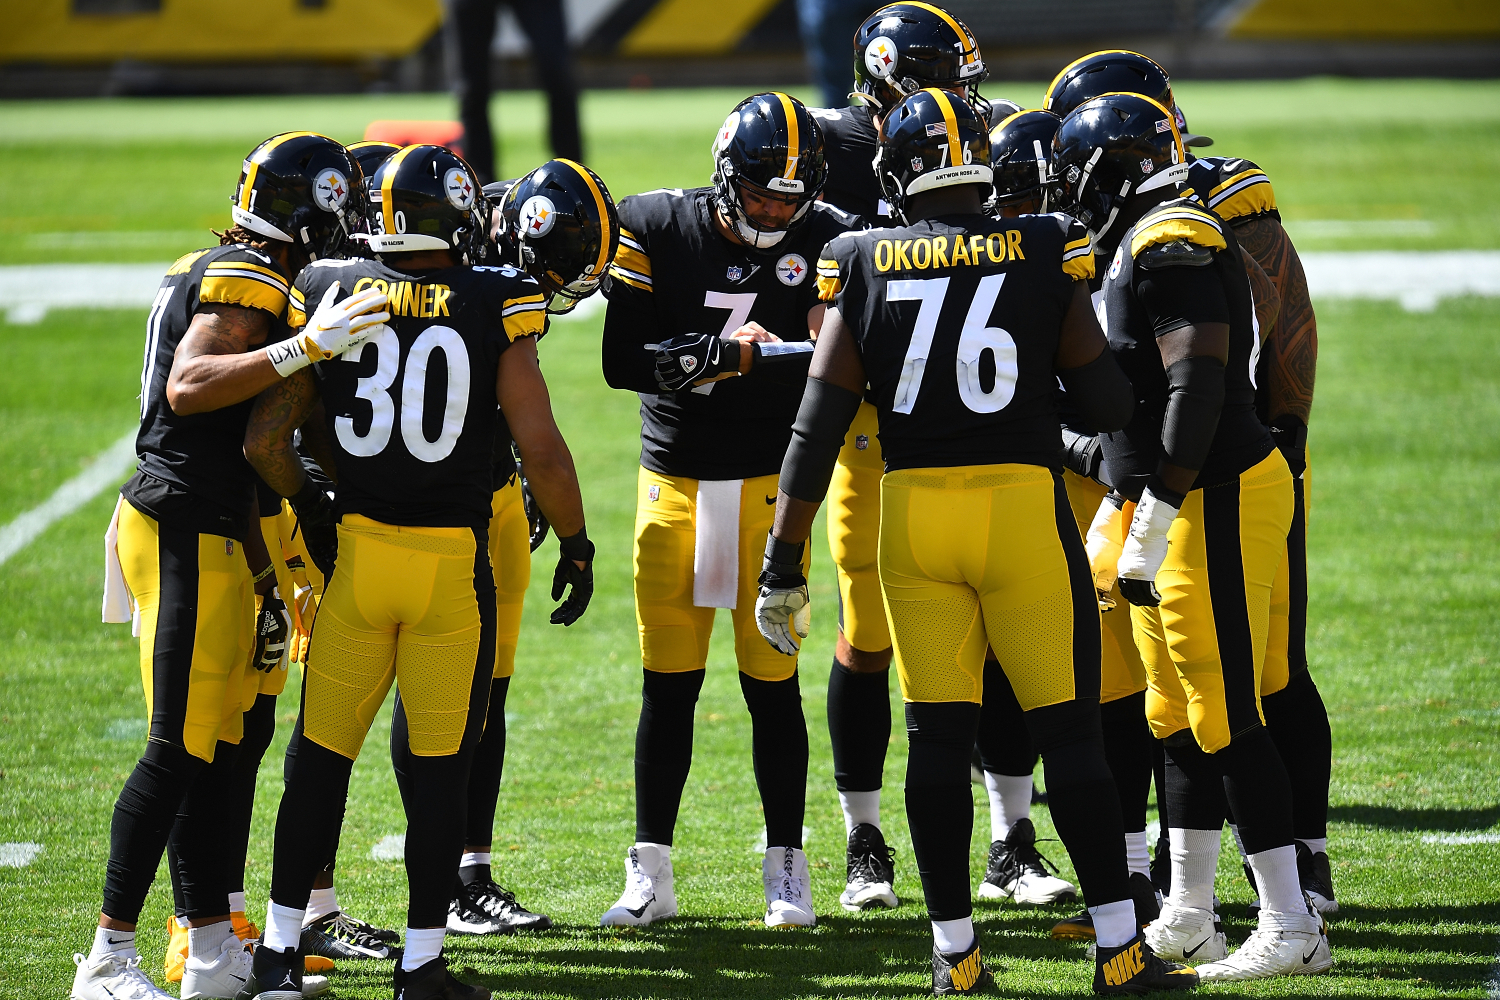 The Pittsburgh Steelers are one of the best teams in the NFL this season. They, however, just suffered a big blow to their Super Bowl hopes.